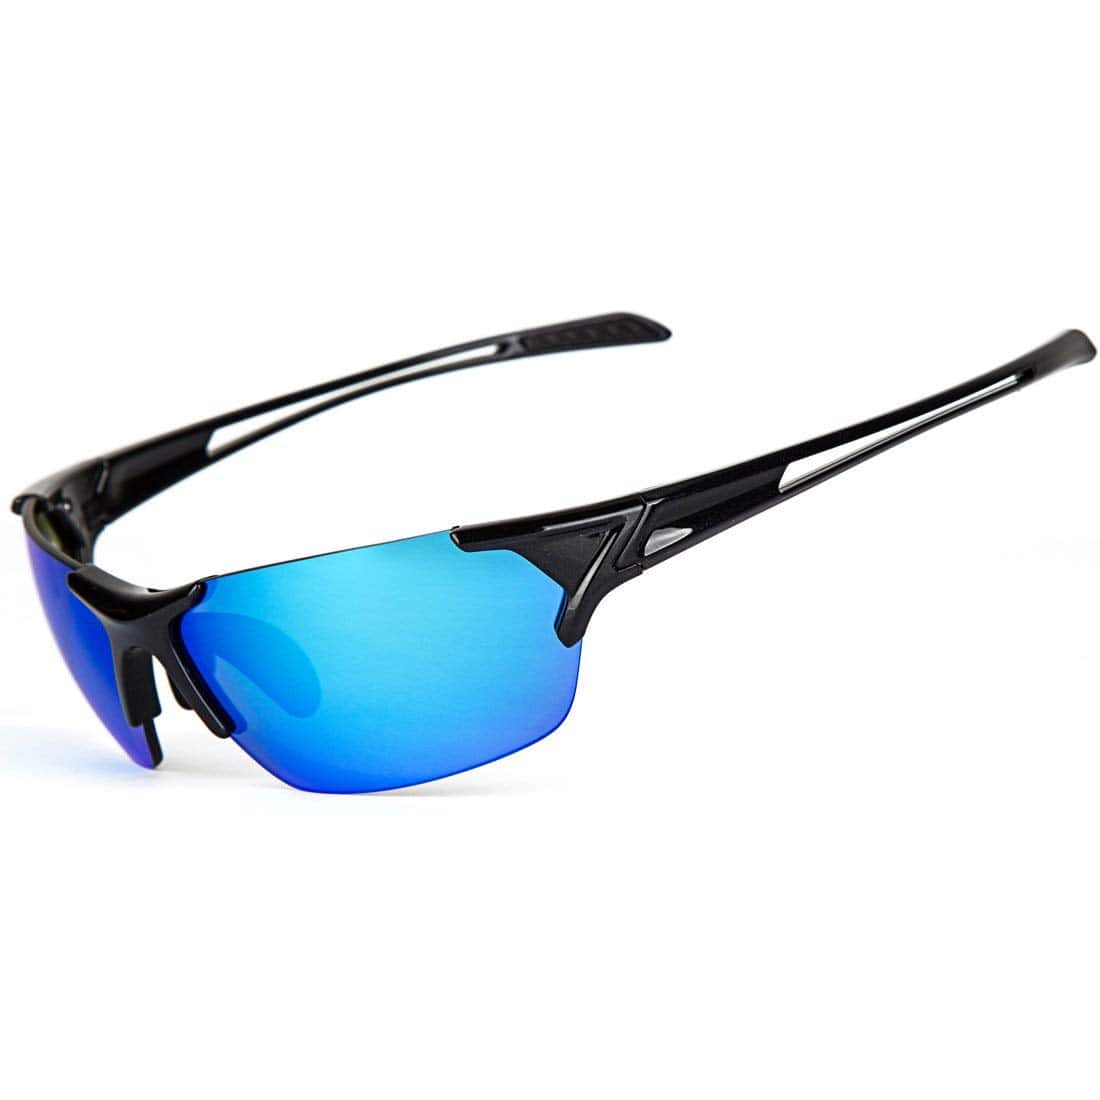 423d49db59f Shieldo Polarized Sports Sunglasses for Men and Women  8.99 ...